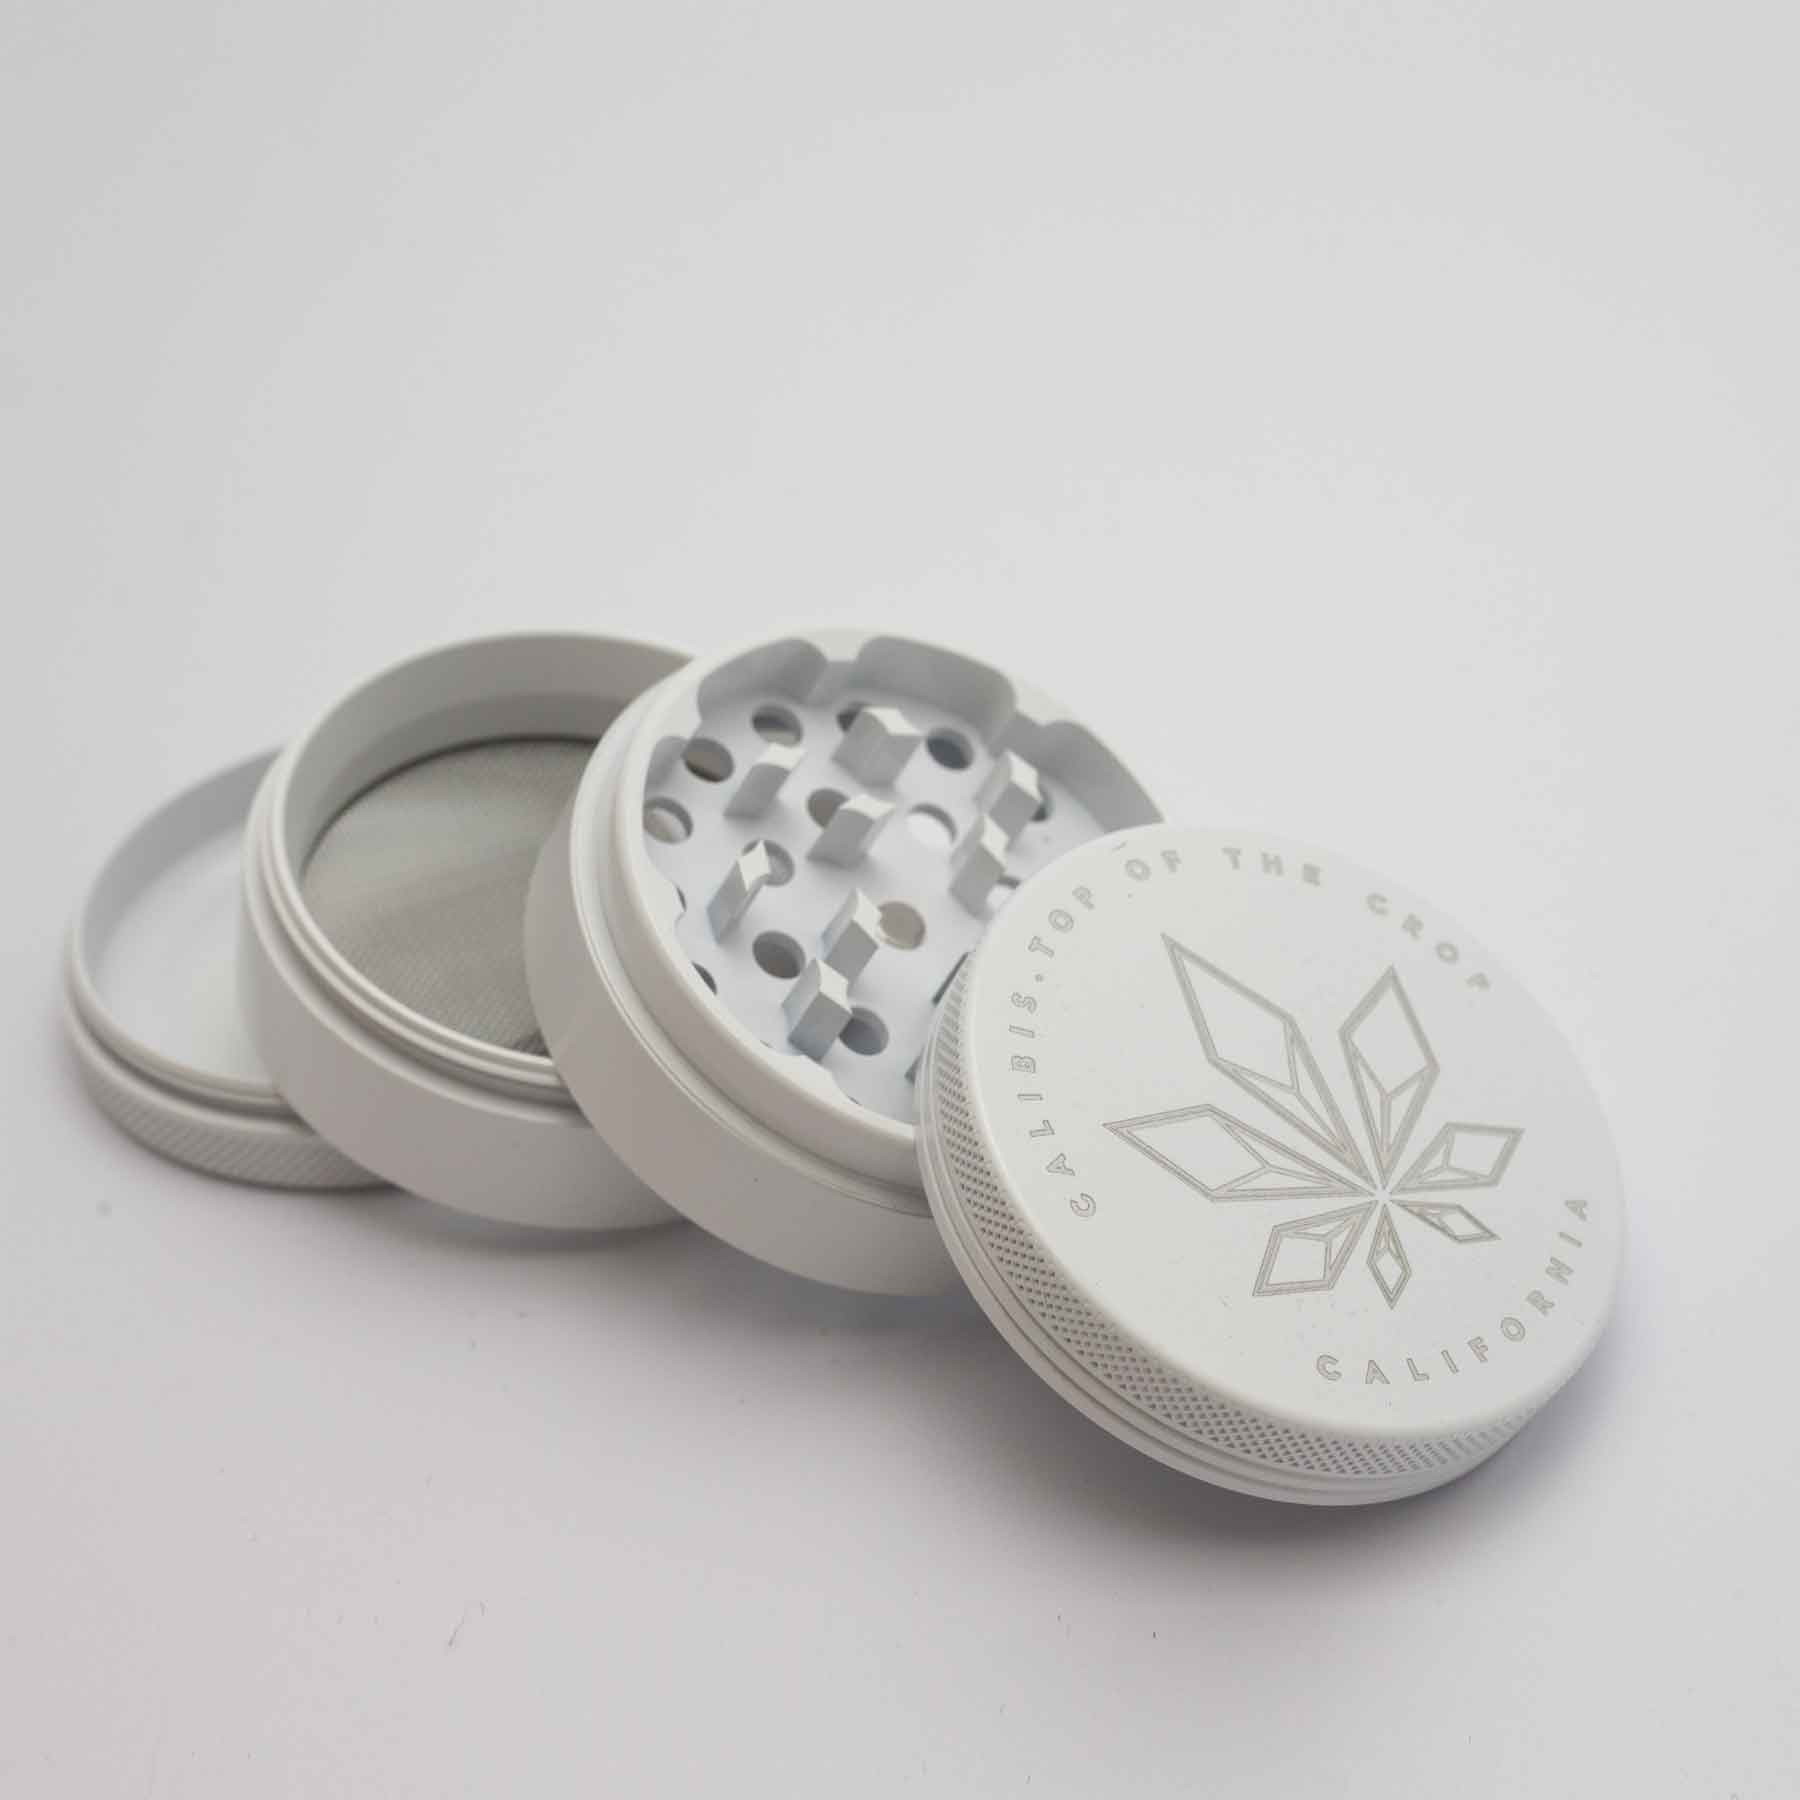 Topped Ceramic Grinder by Calibis Clothing